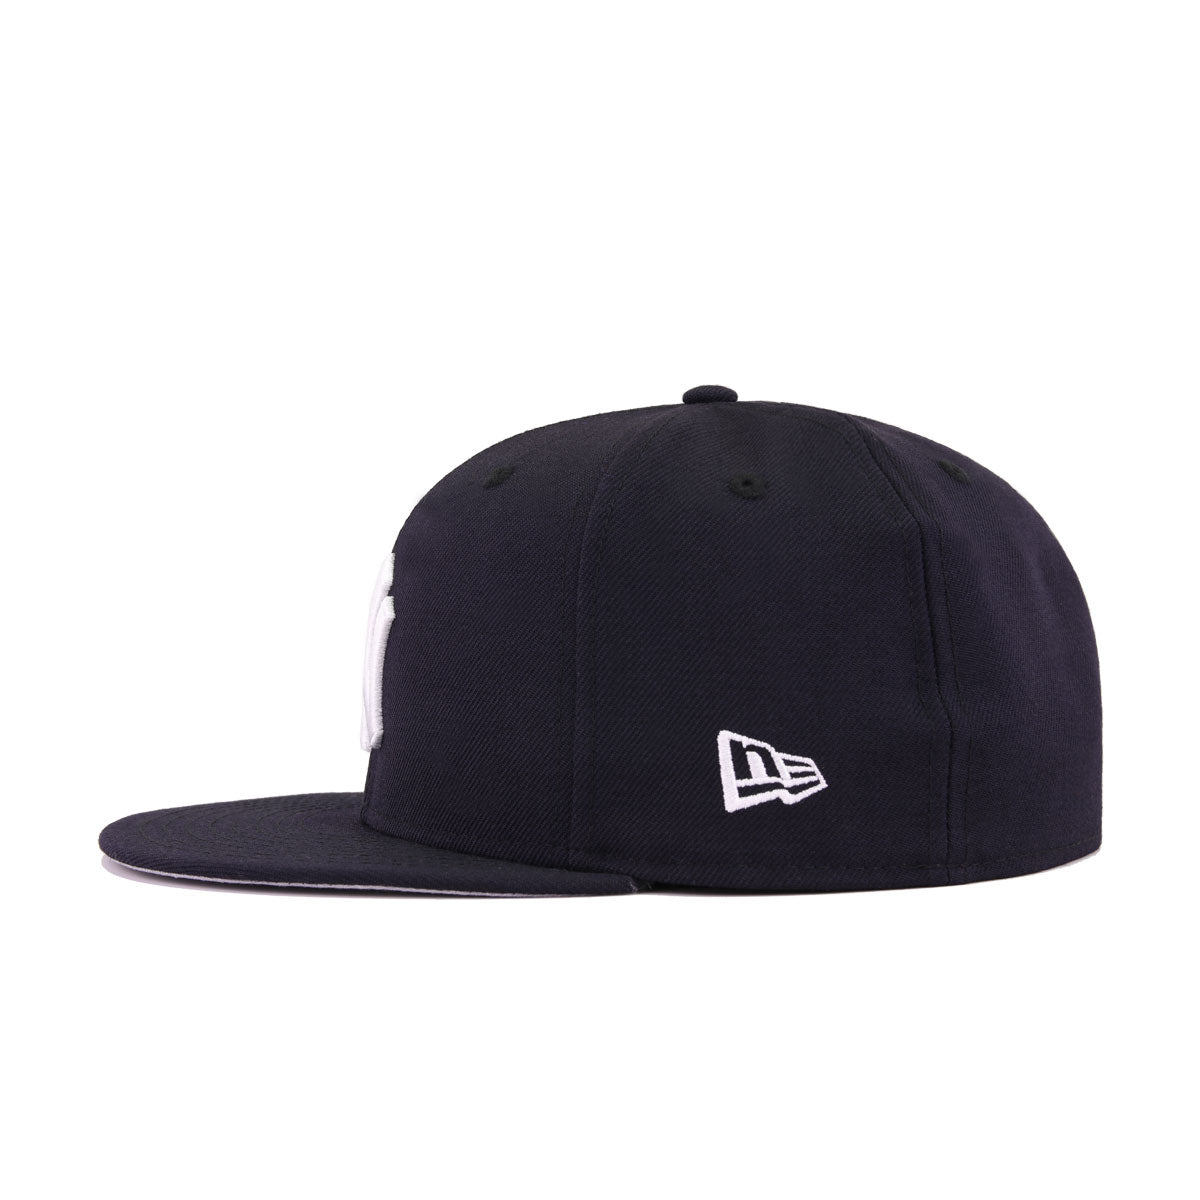 New York Yankees Navy Dominican Republic Crest New Era 59Fifty Fitted